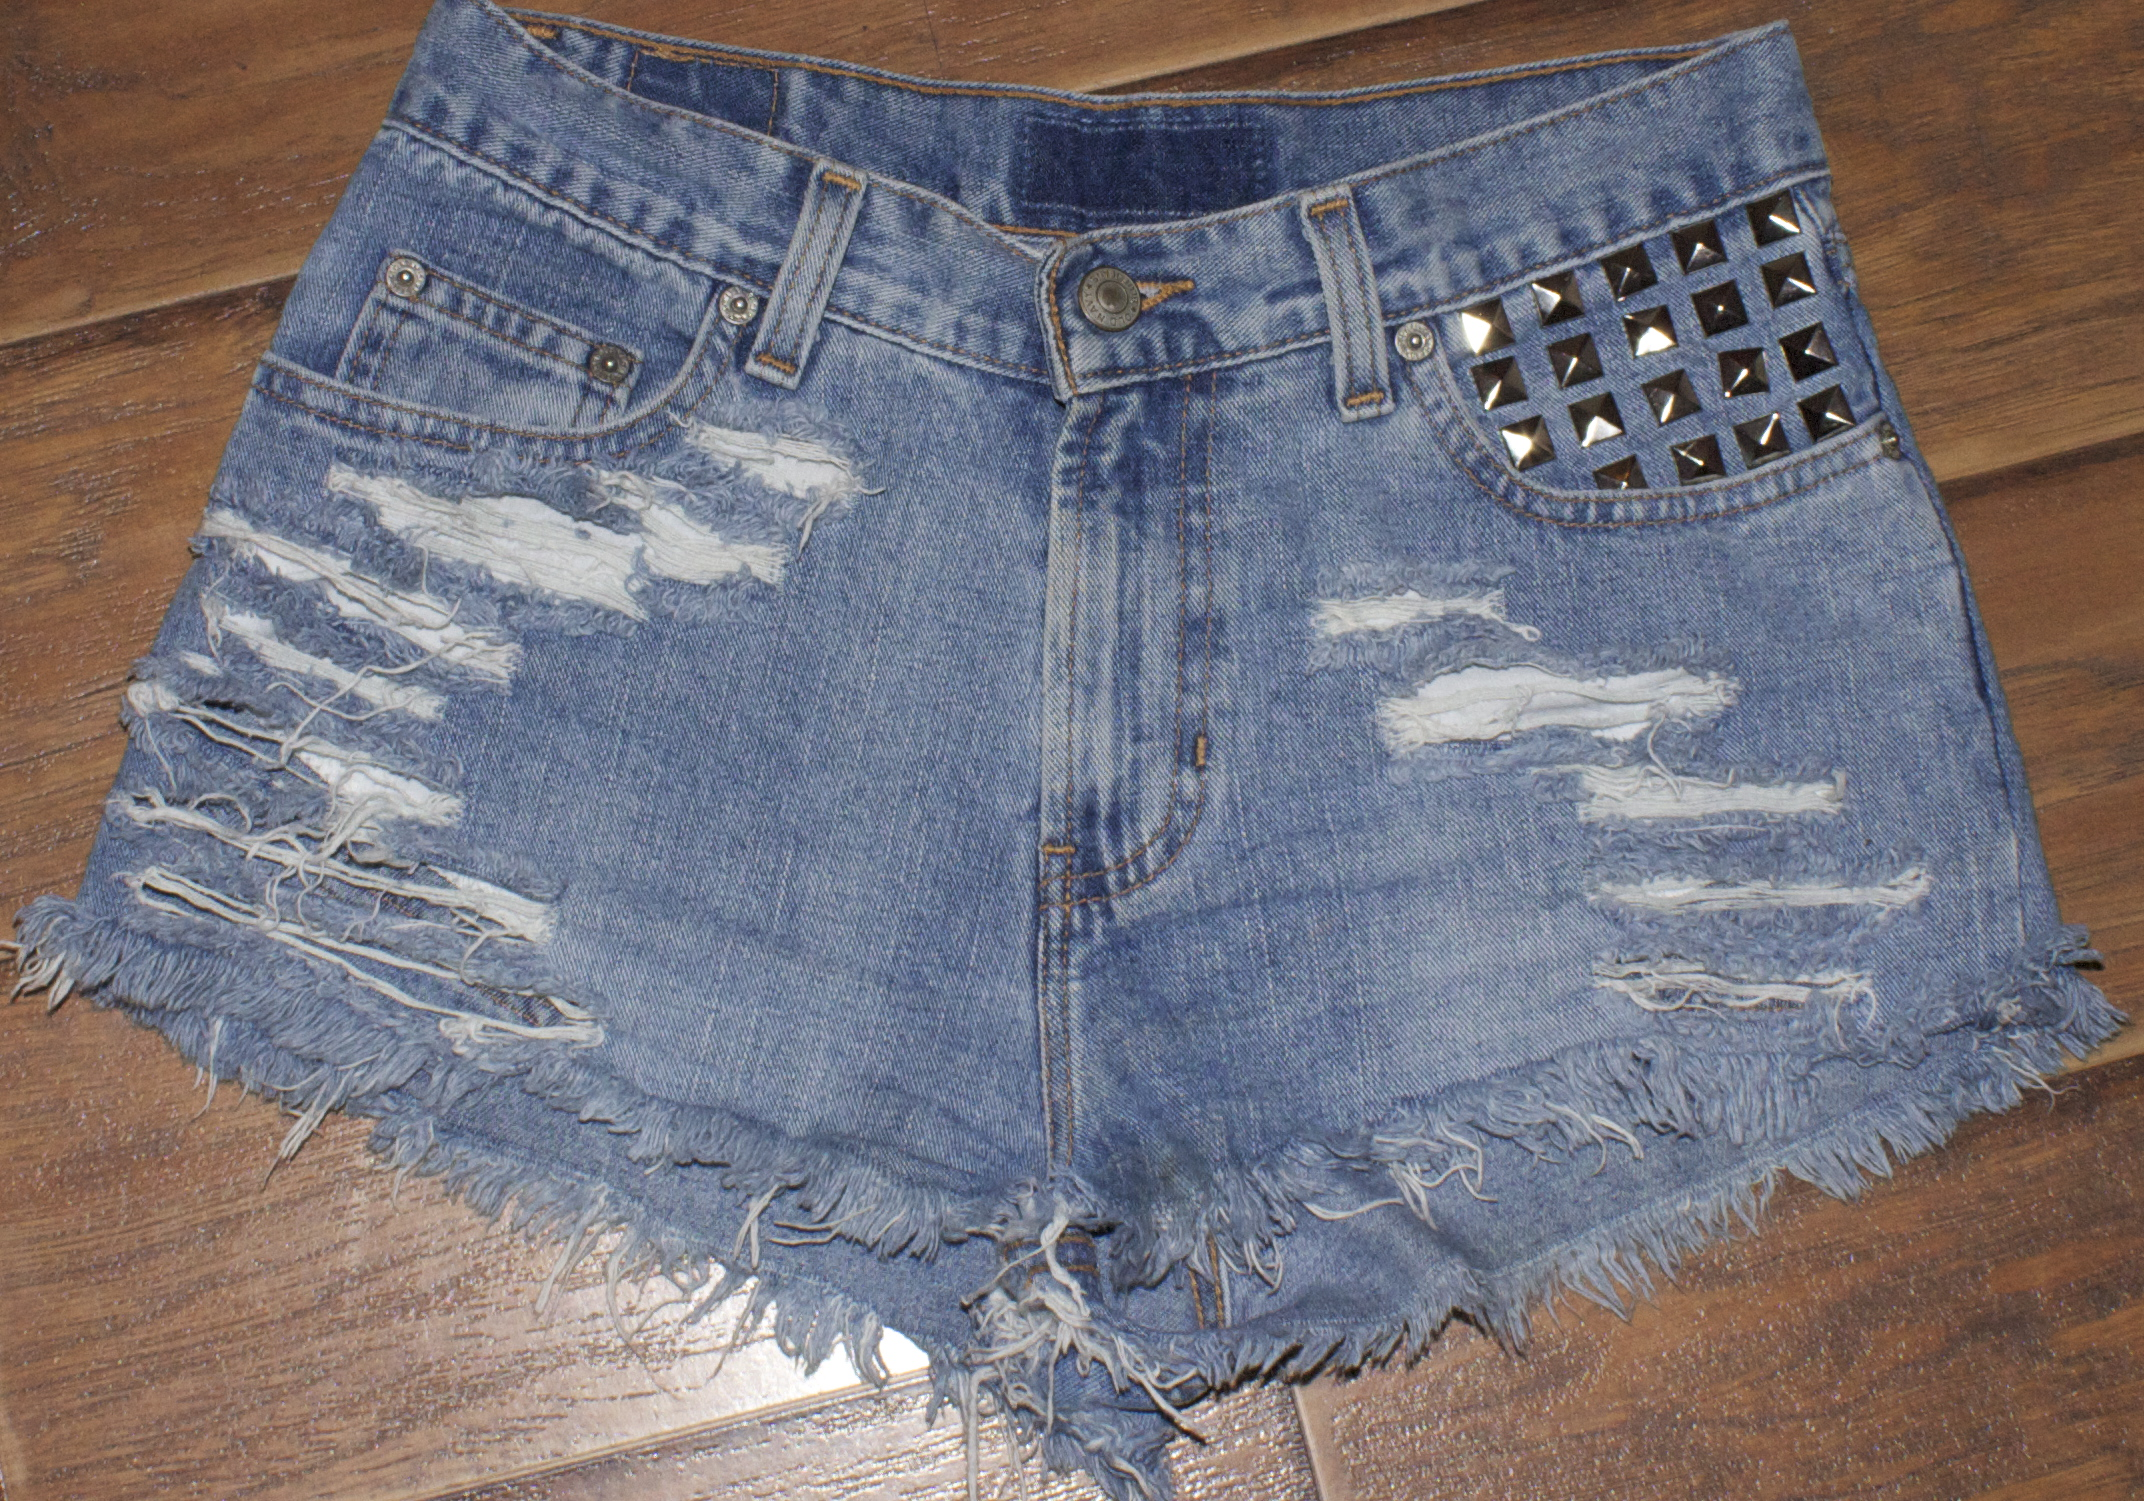 Silver studded high waisted shorts from lilianjazmynn on storenvy